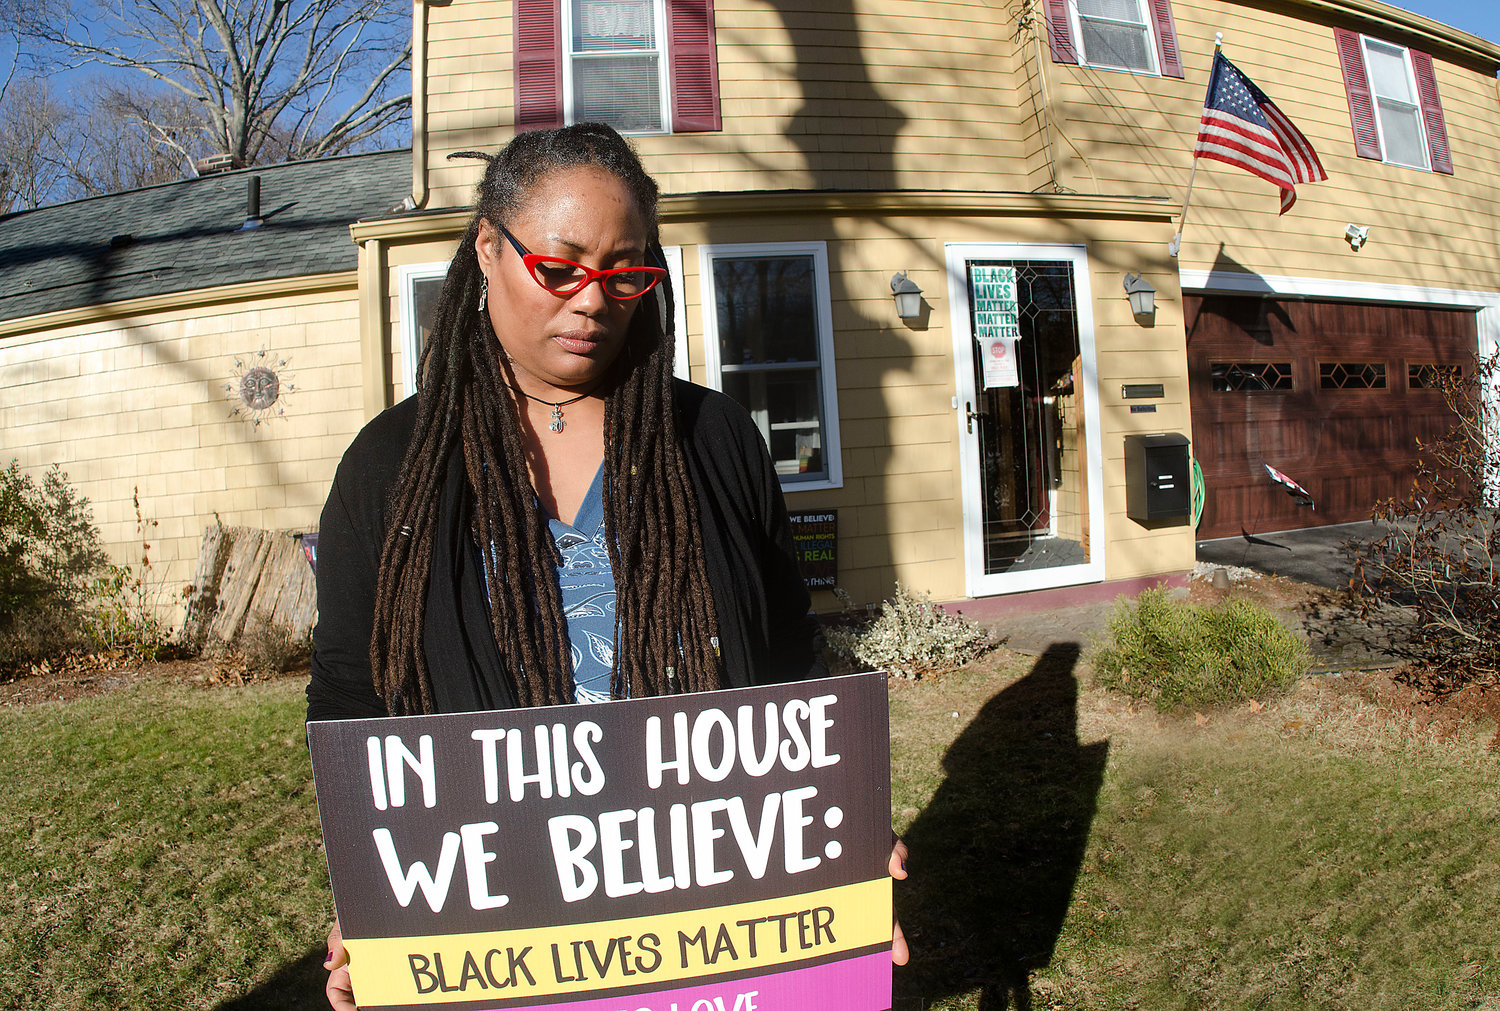 Candace Breen was one of a handful of residents who recently received a letter from another resident telling them to remove Biden and Black Lives Matter signs from their yards.